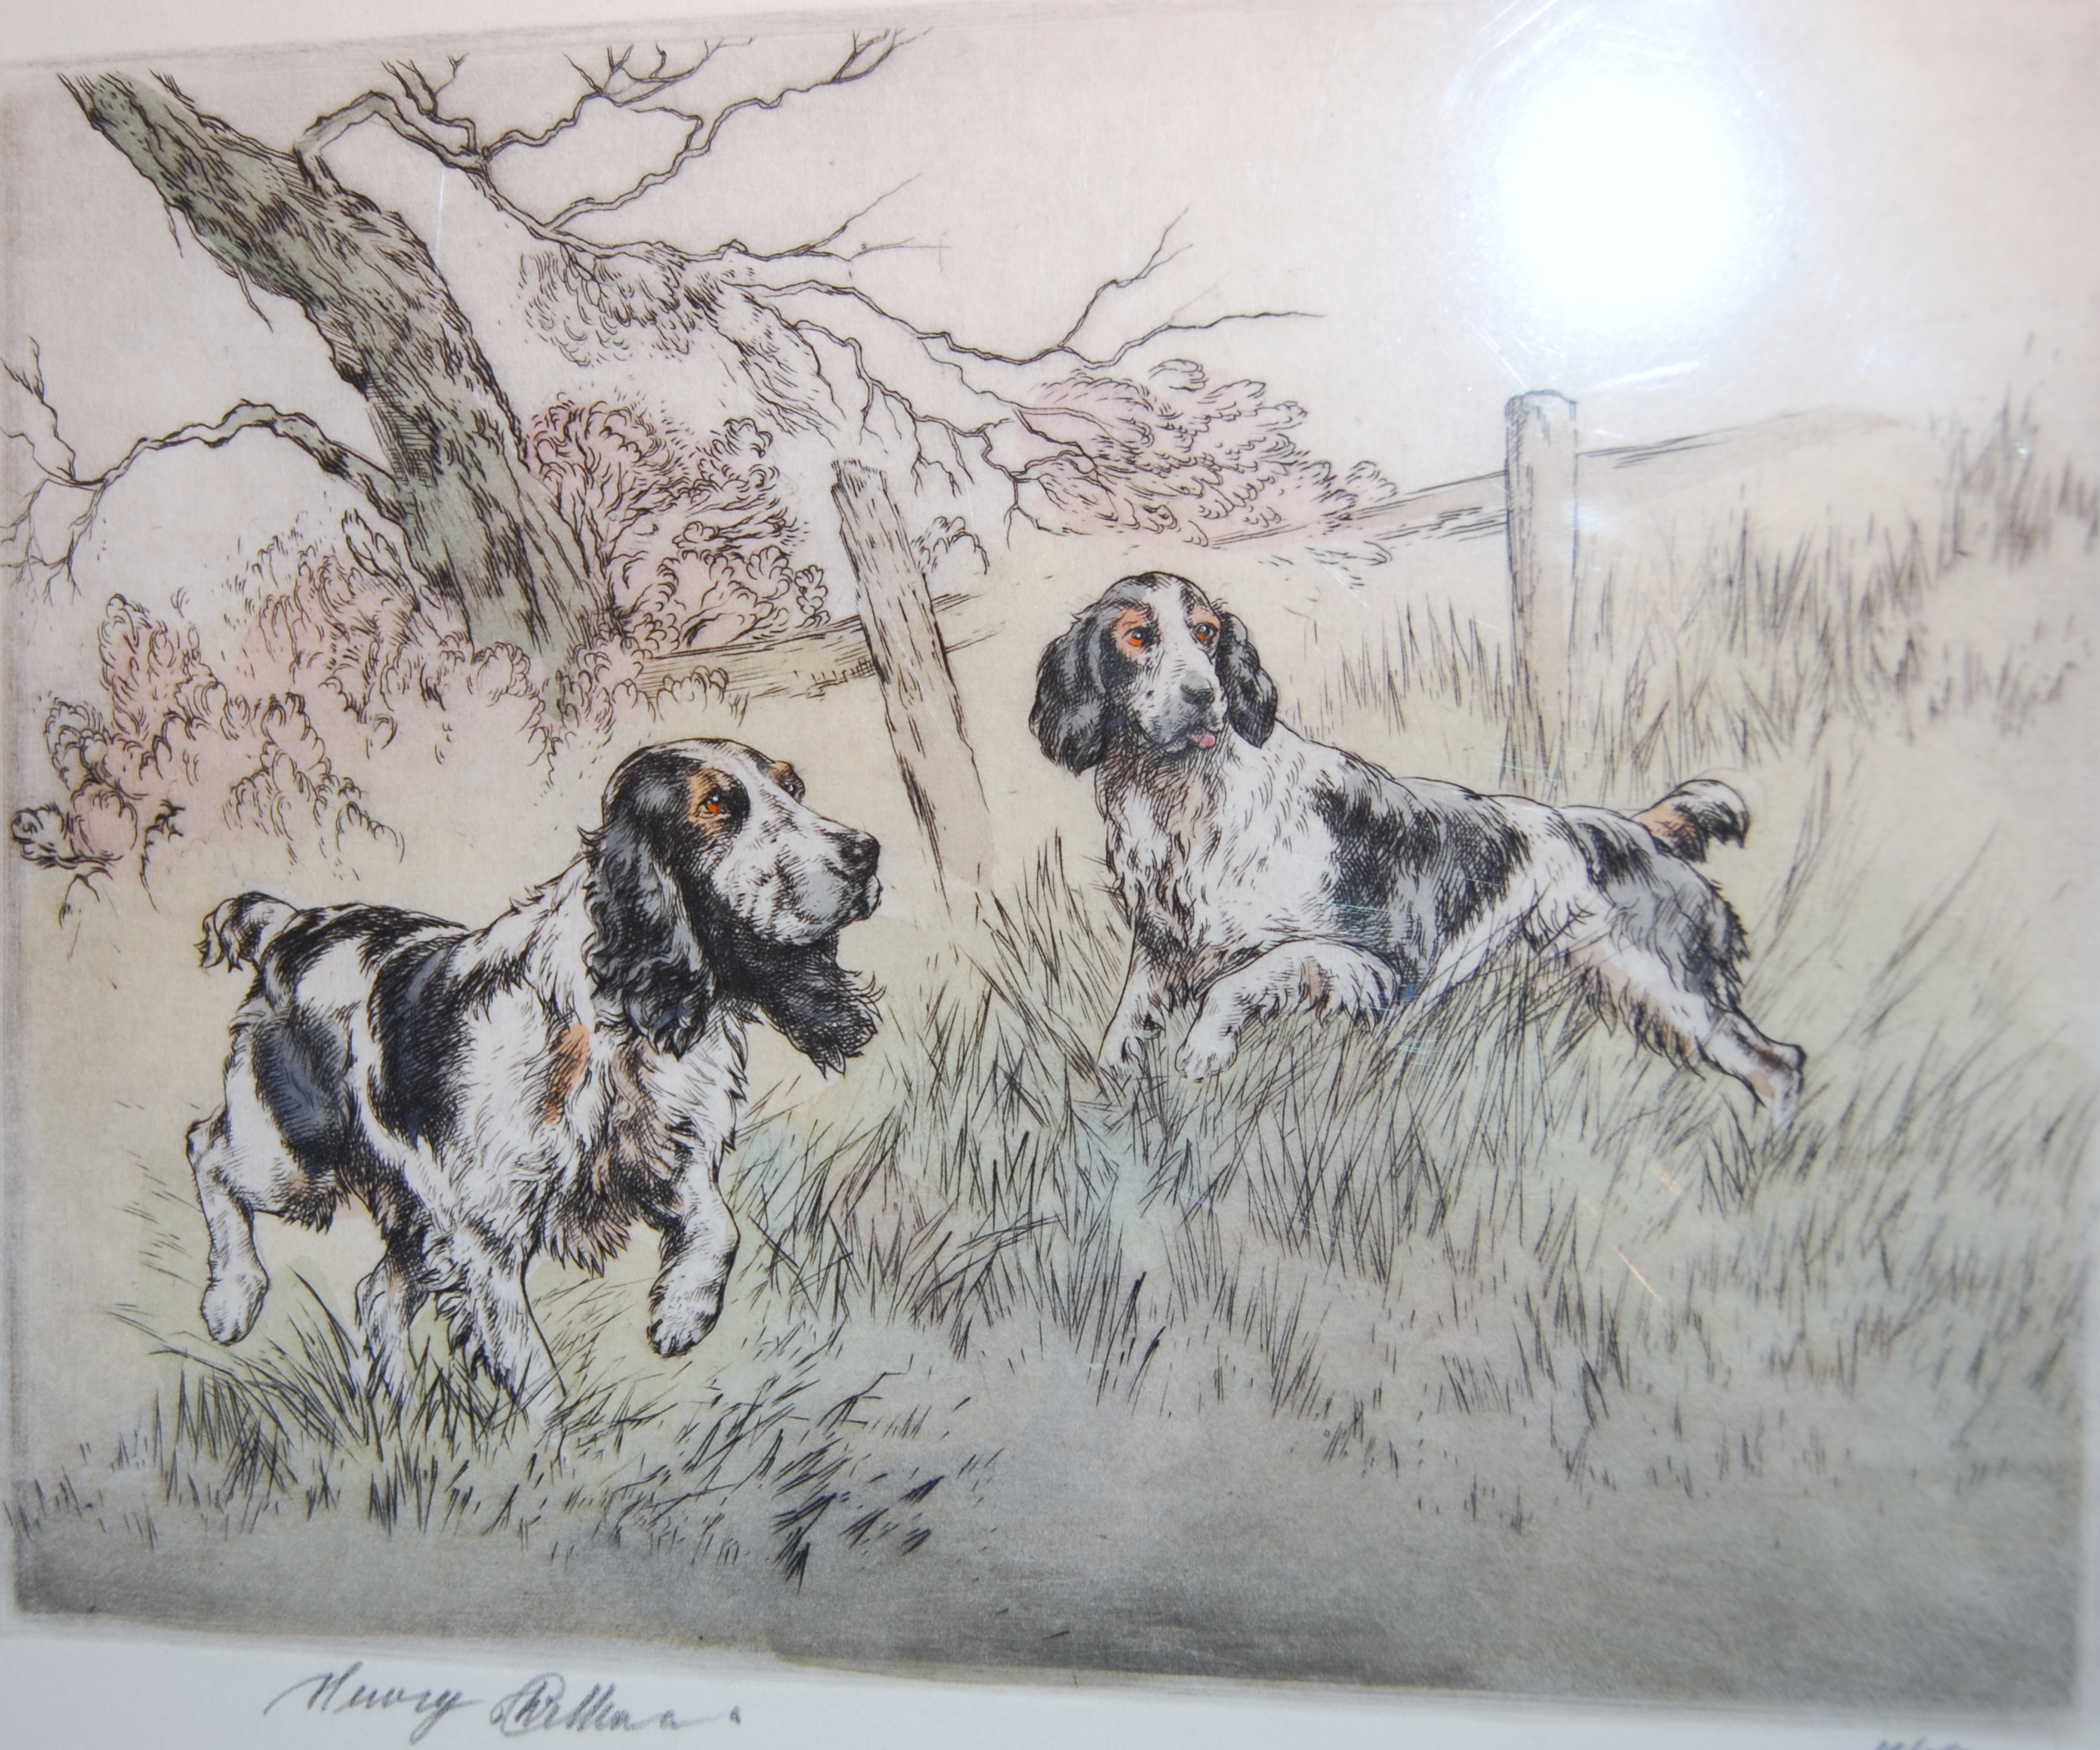 SpanielsHenryWilkinsonsignedprint10x15inches£110